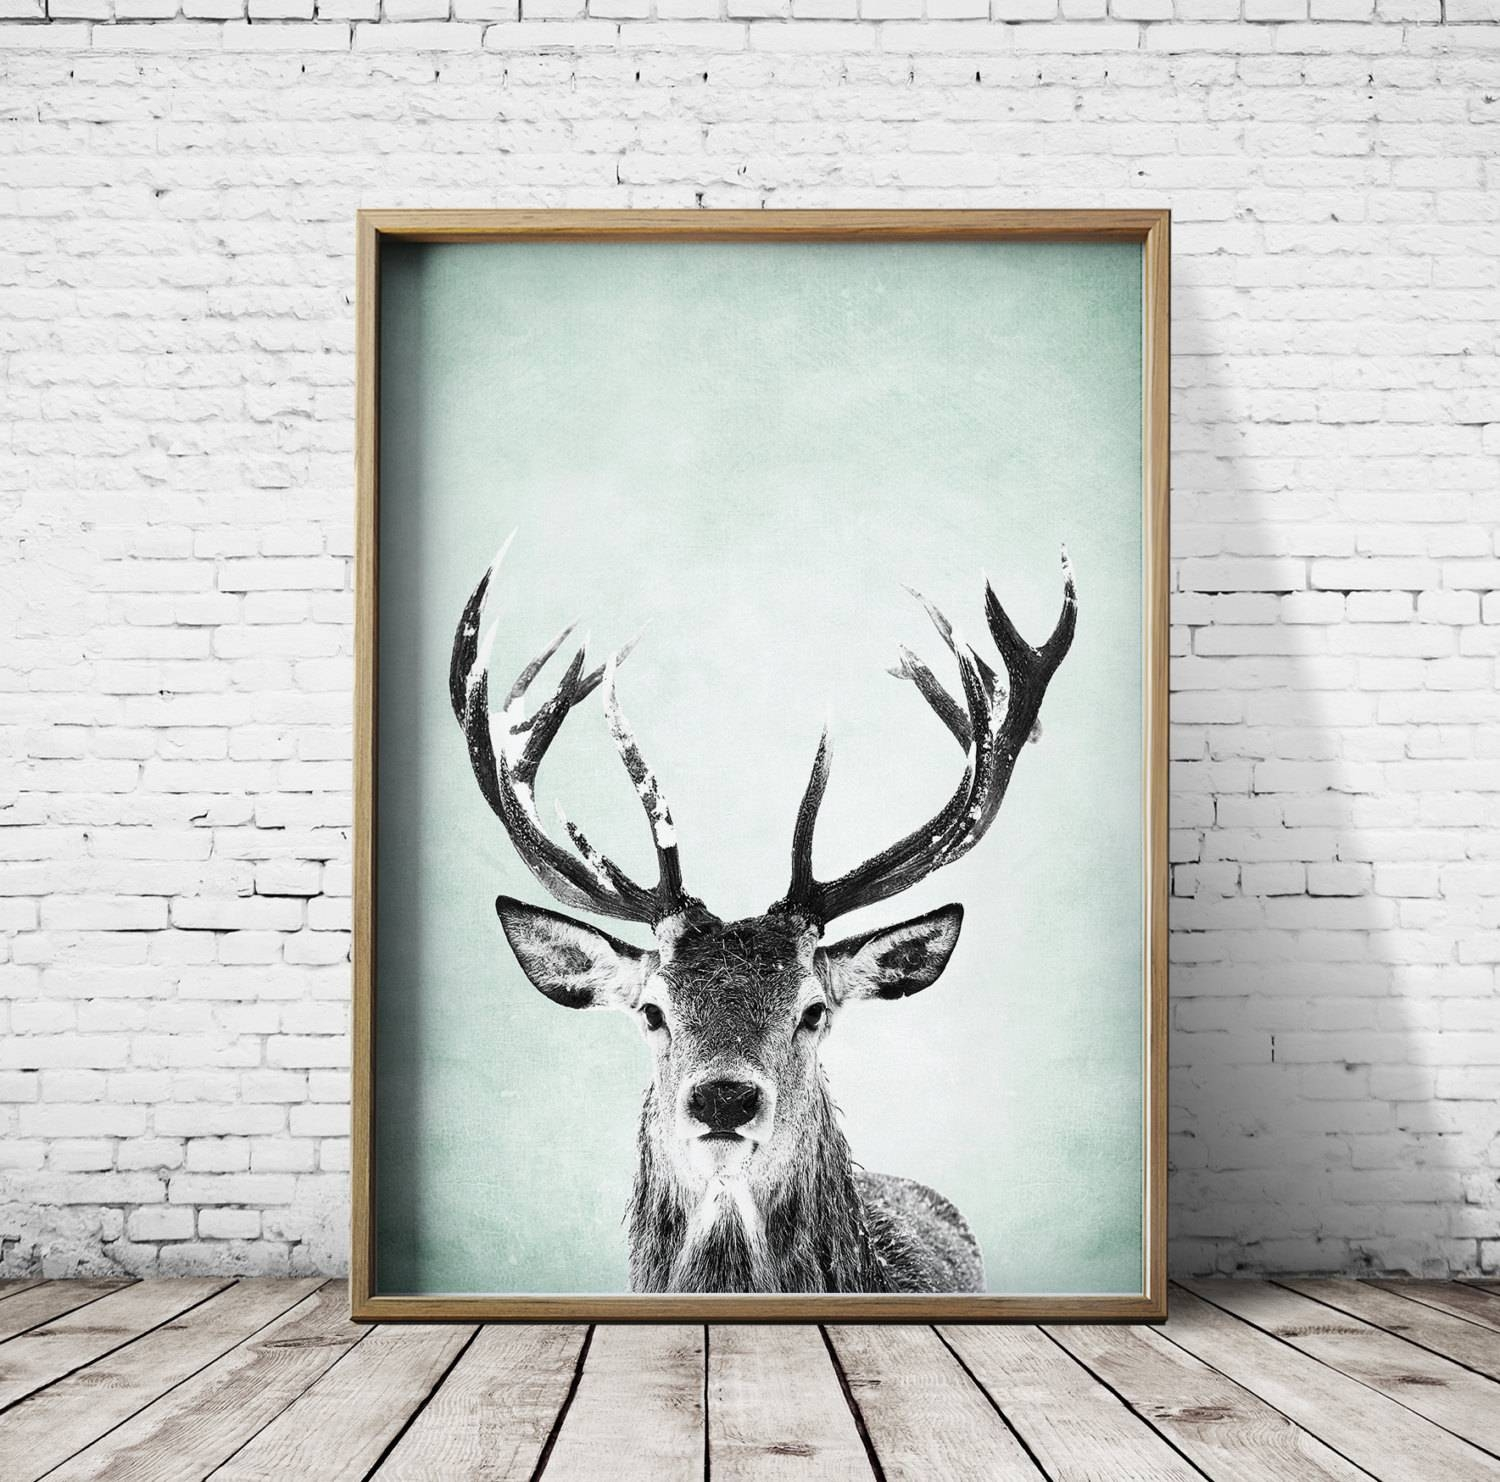 Wall Art Print Deer Print Deer Antlers Stag Print Animal Print Pertaining To Most Recently Released Stag Wall Art (View 3 of 20)